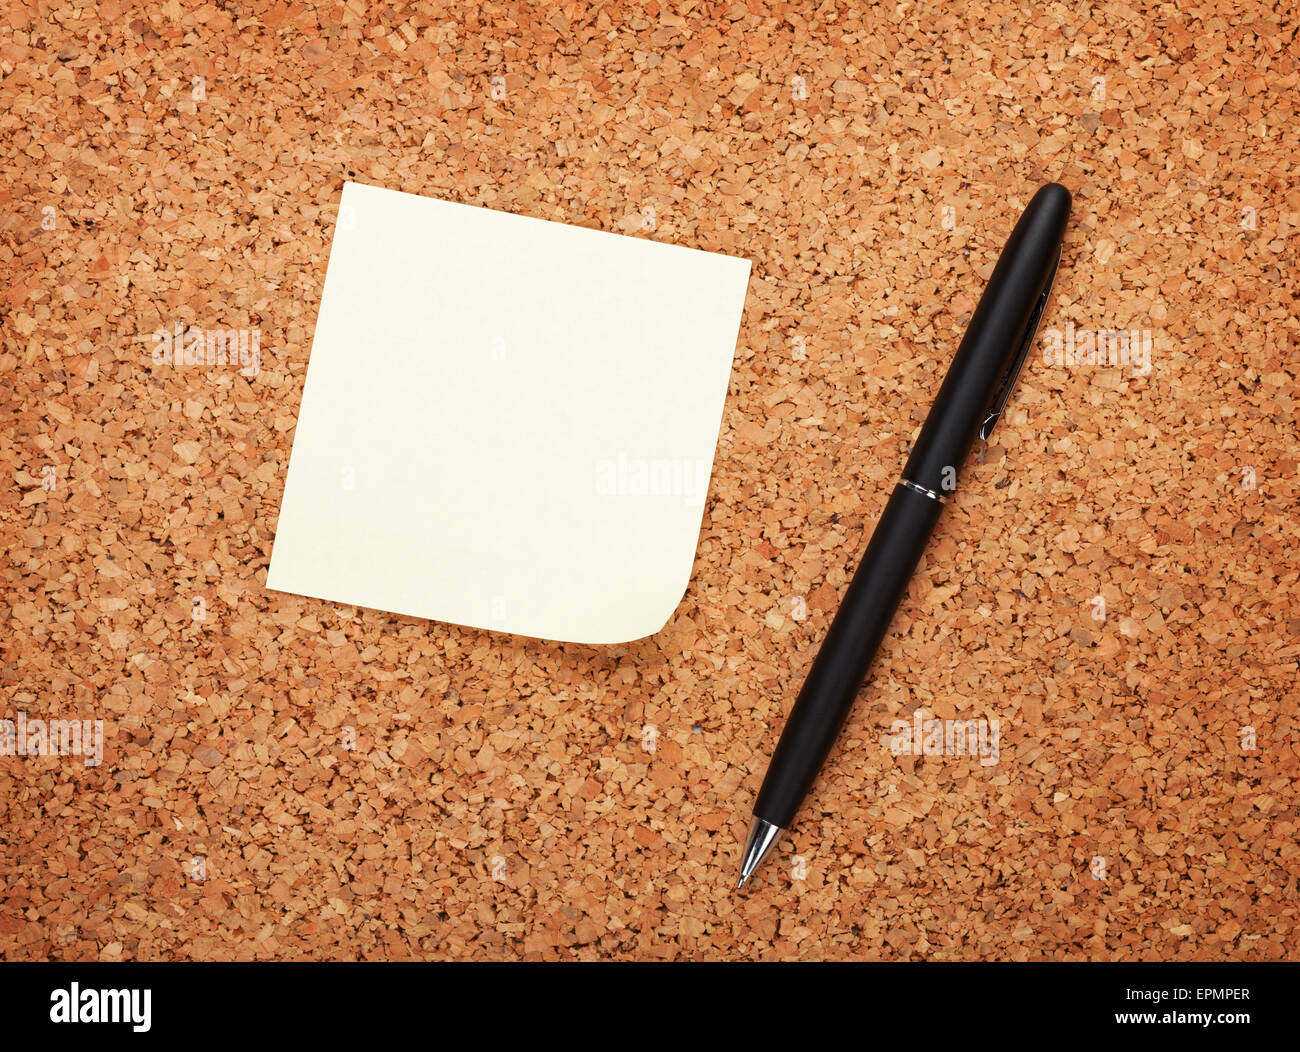 Blank postit note on cork notice board with pen - Stock Image